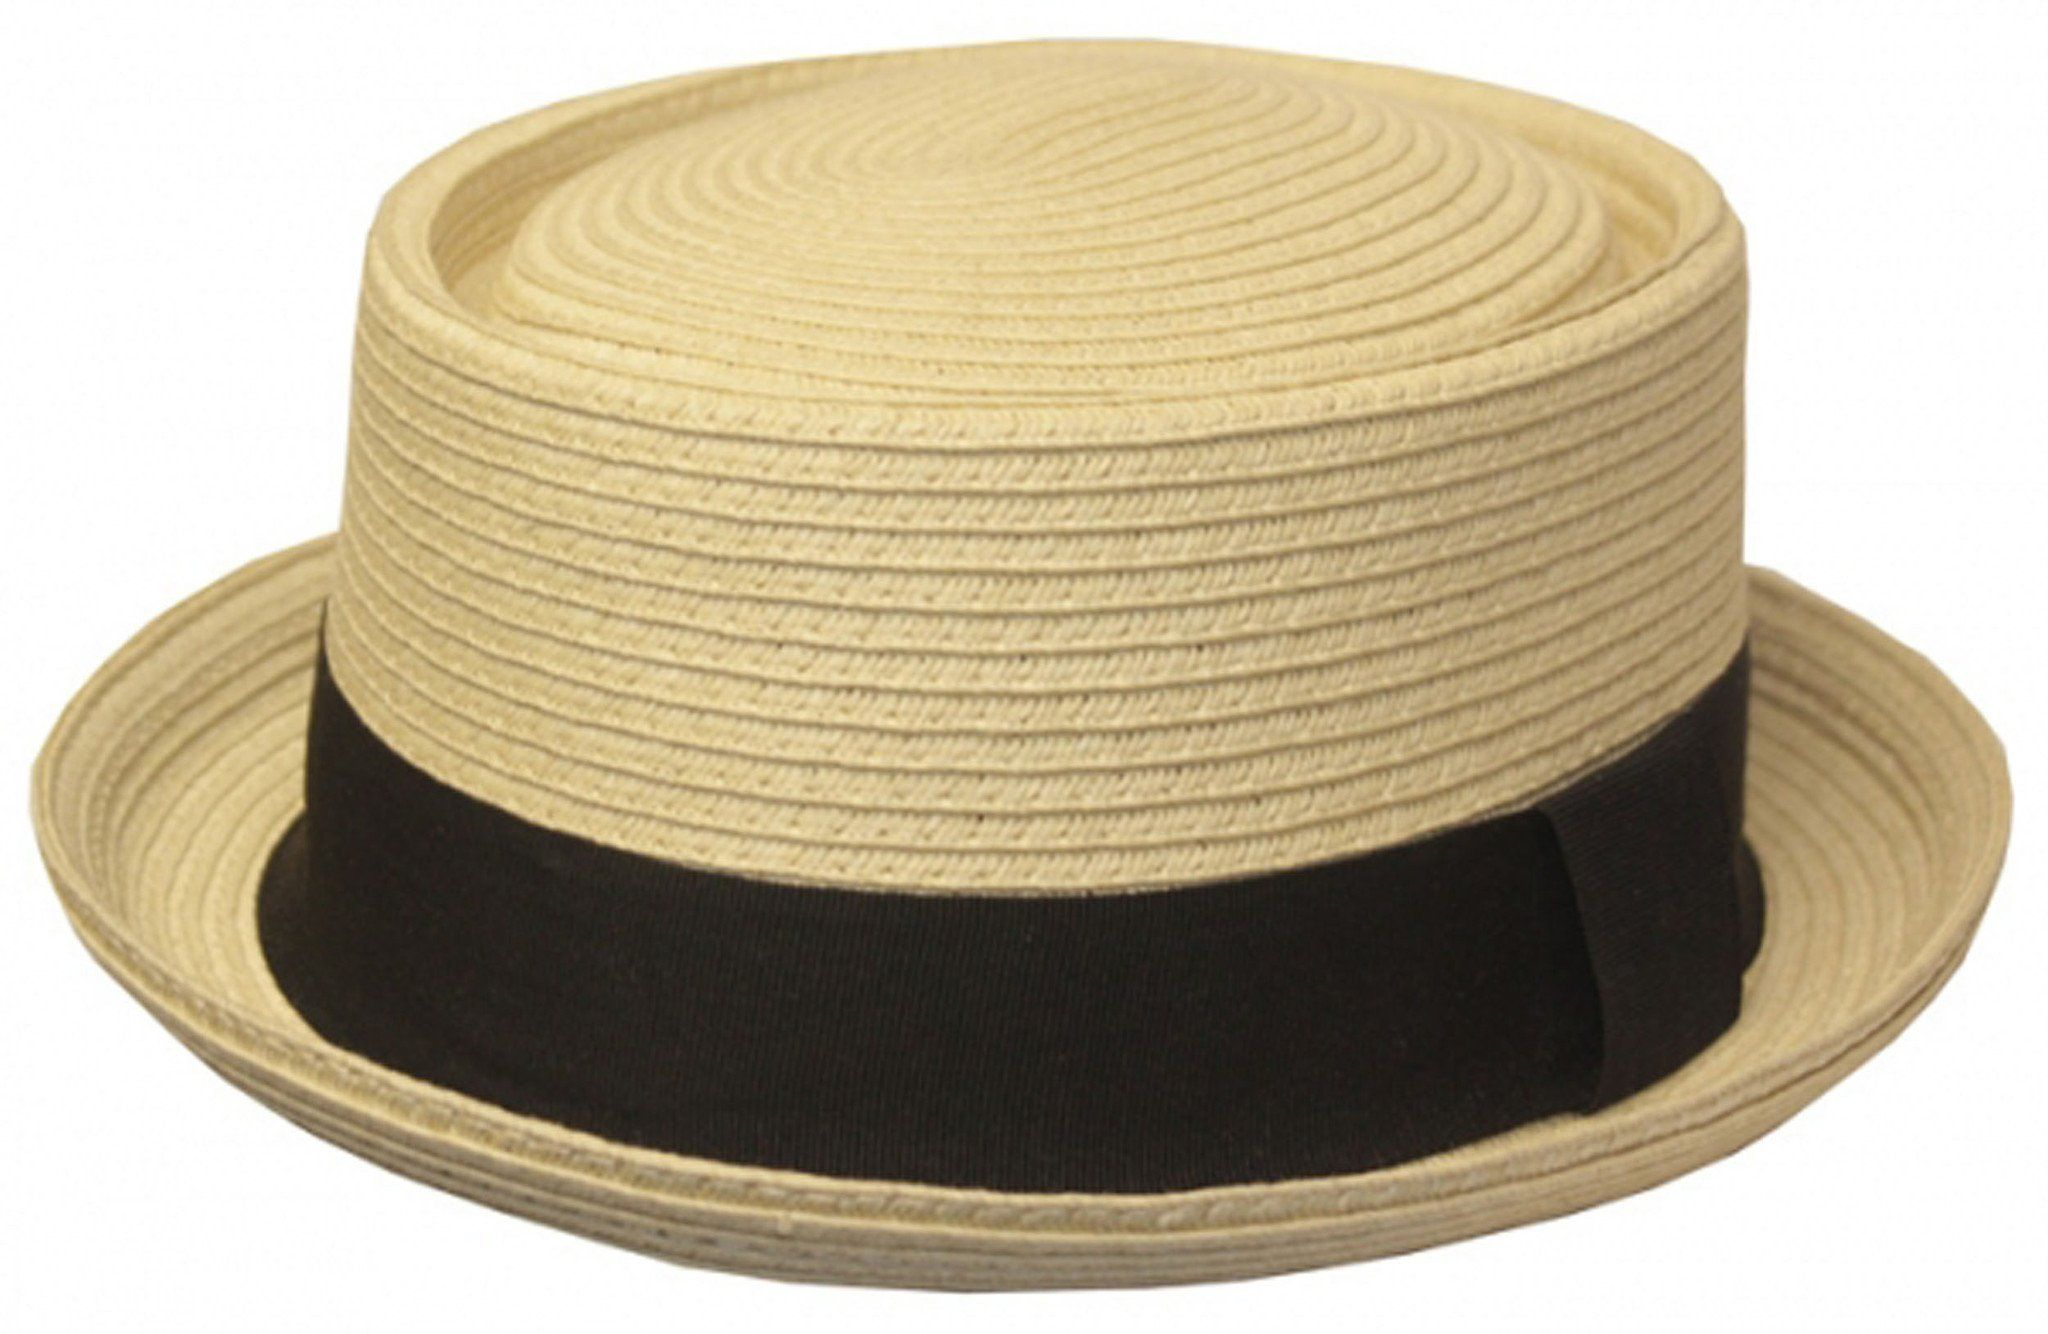 34f8b33f239 Mens Structured 100% Paper Straw Flat Top Pork Pie Fedora Hat ...